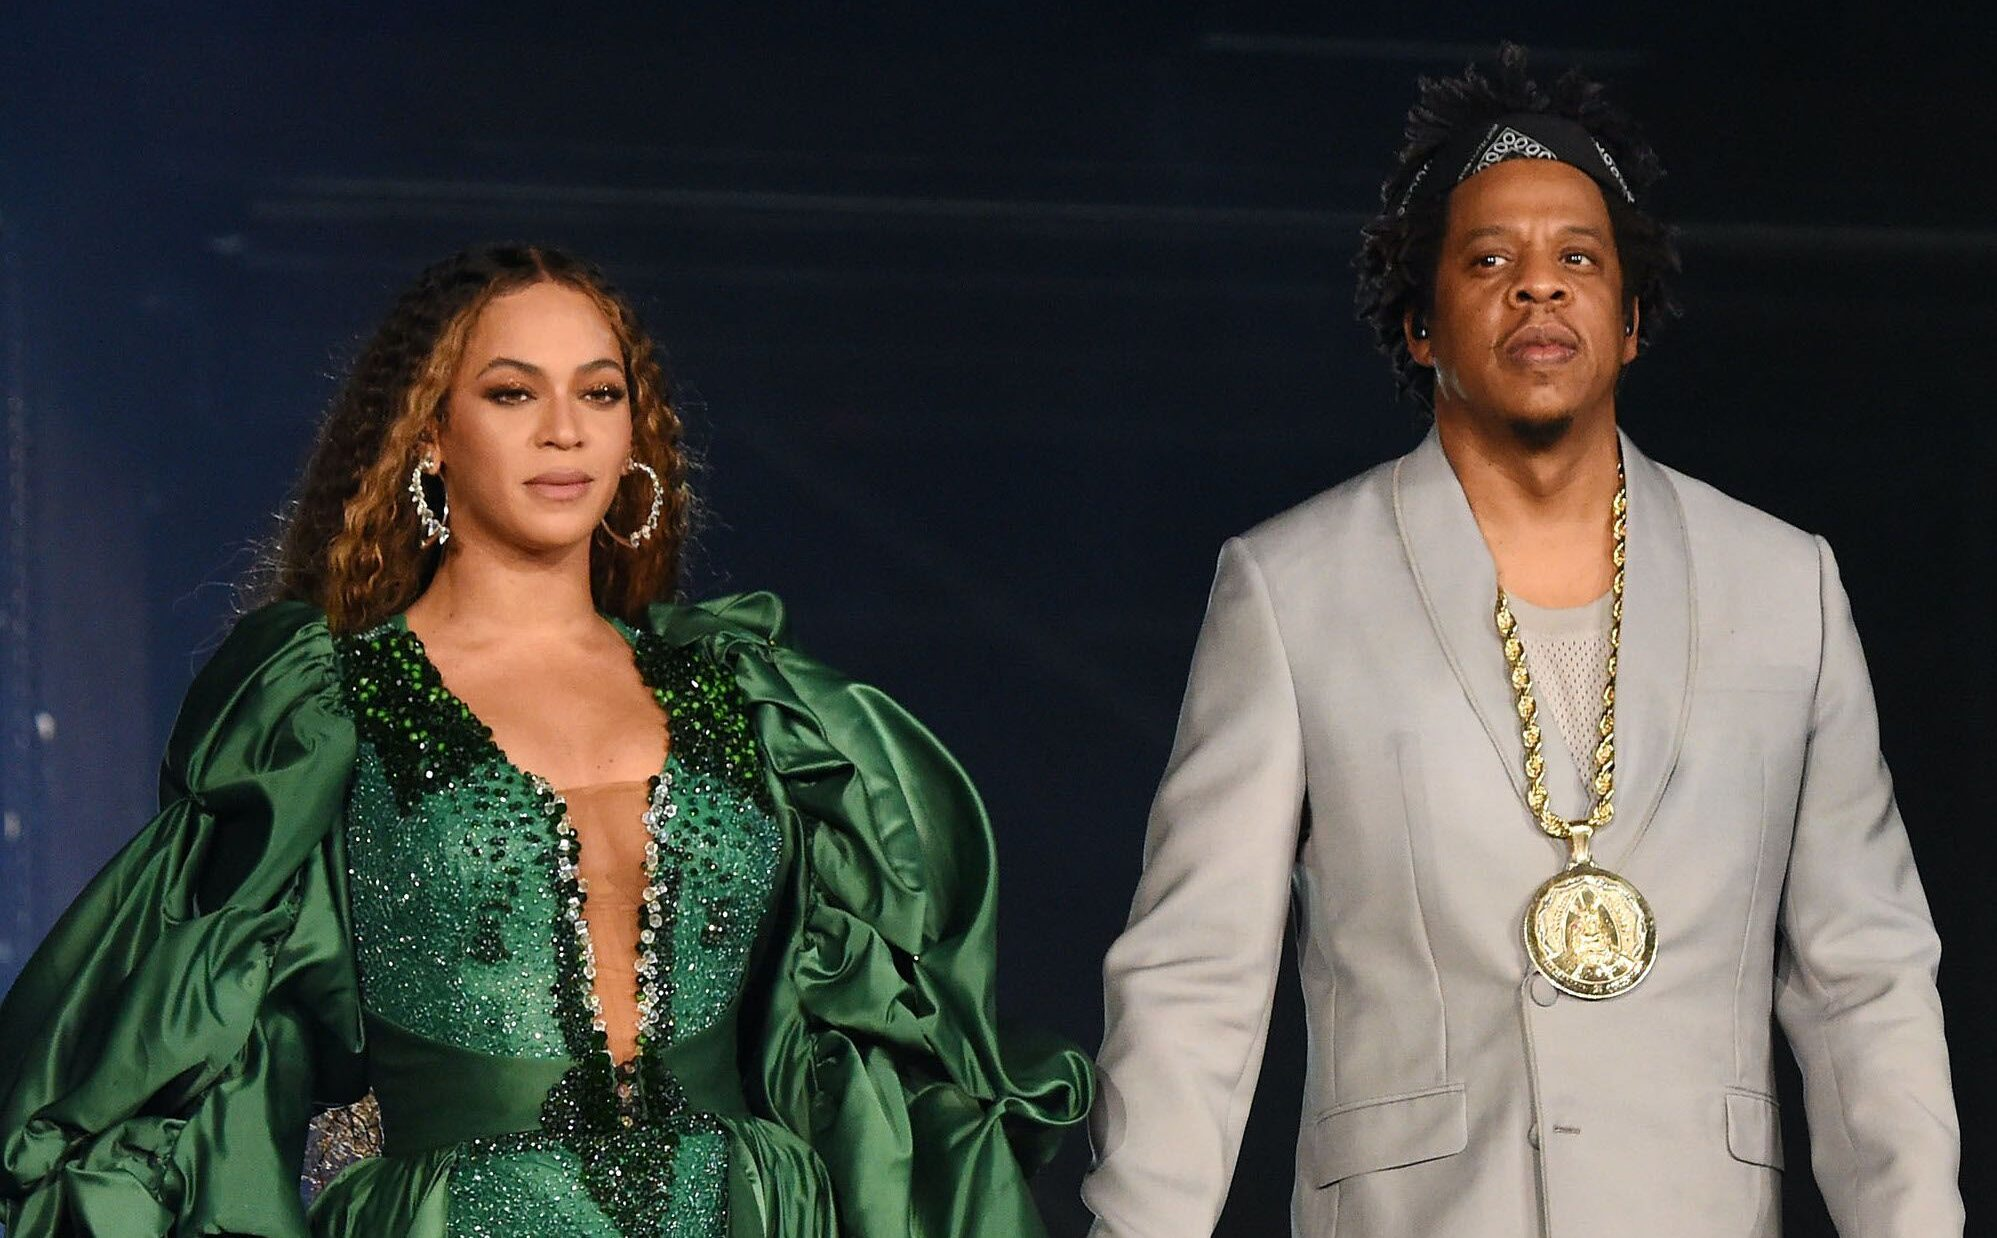 Jay-Z Says He Likes Working With Beyoncé Because She's 'Super Talented'